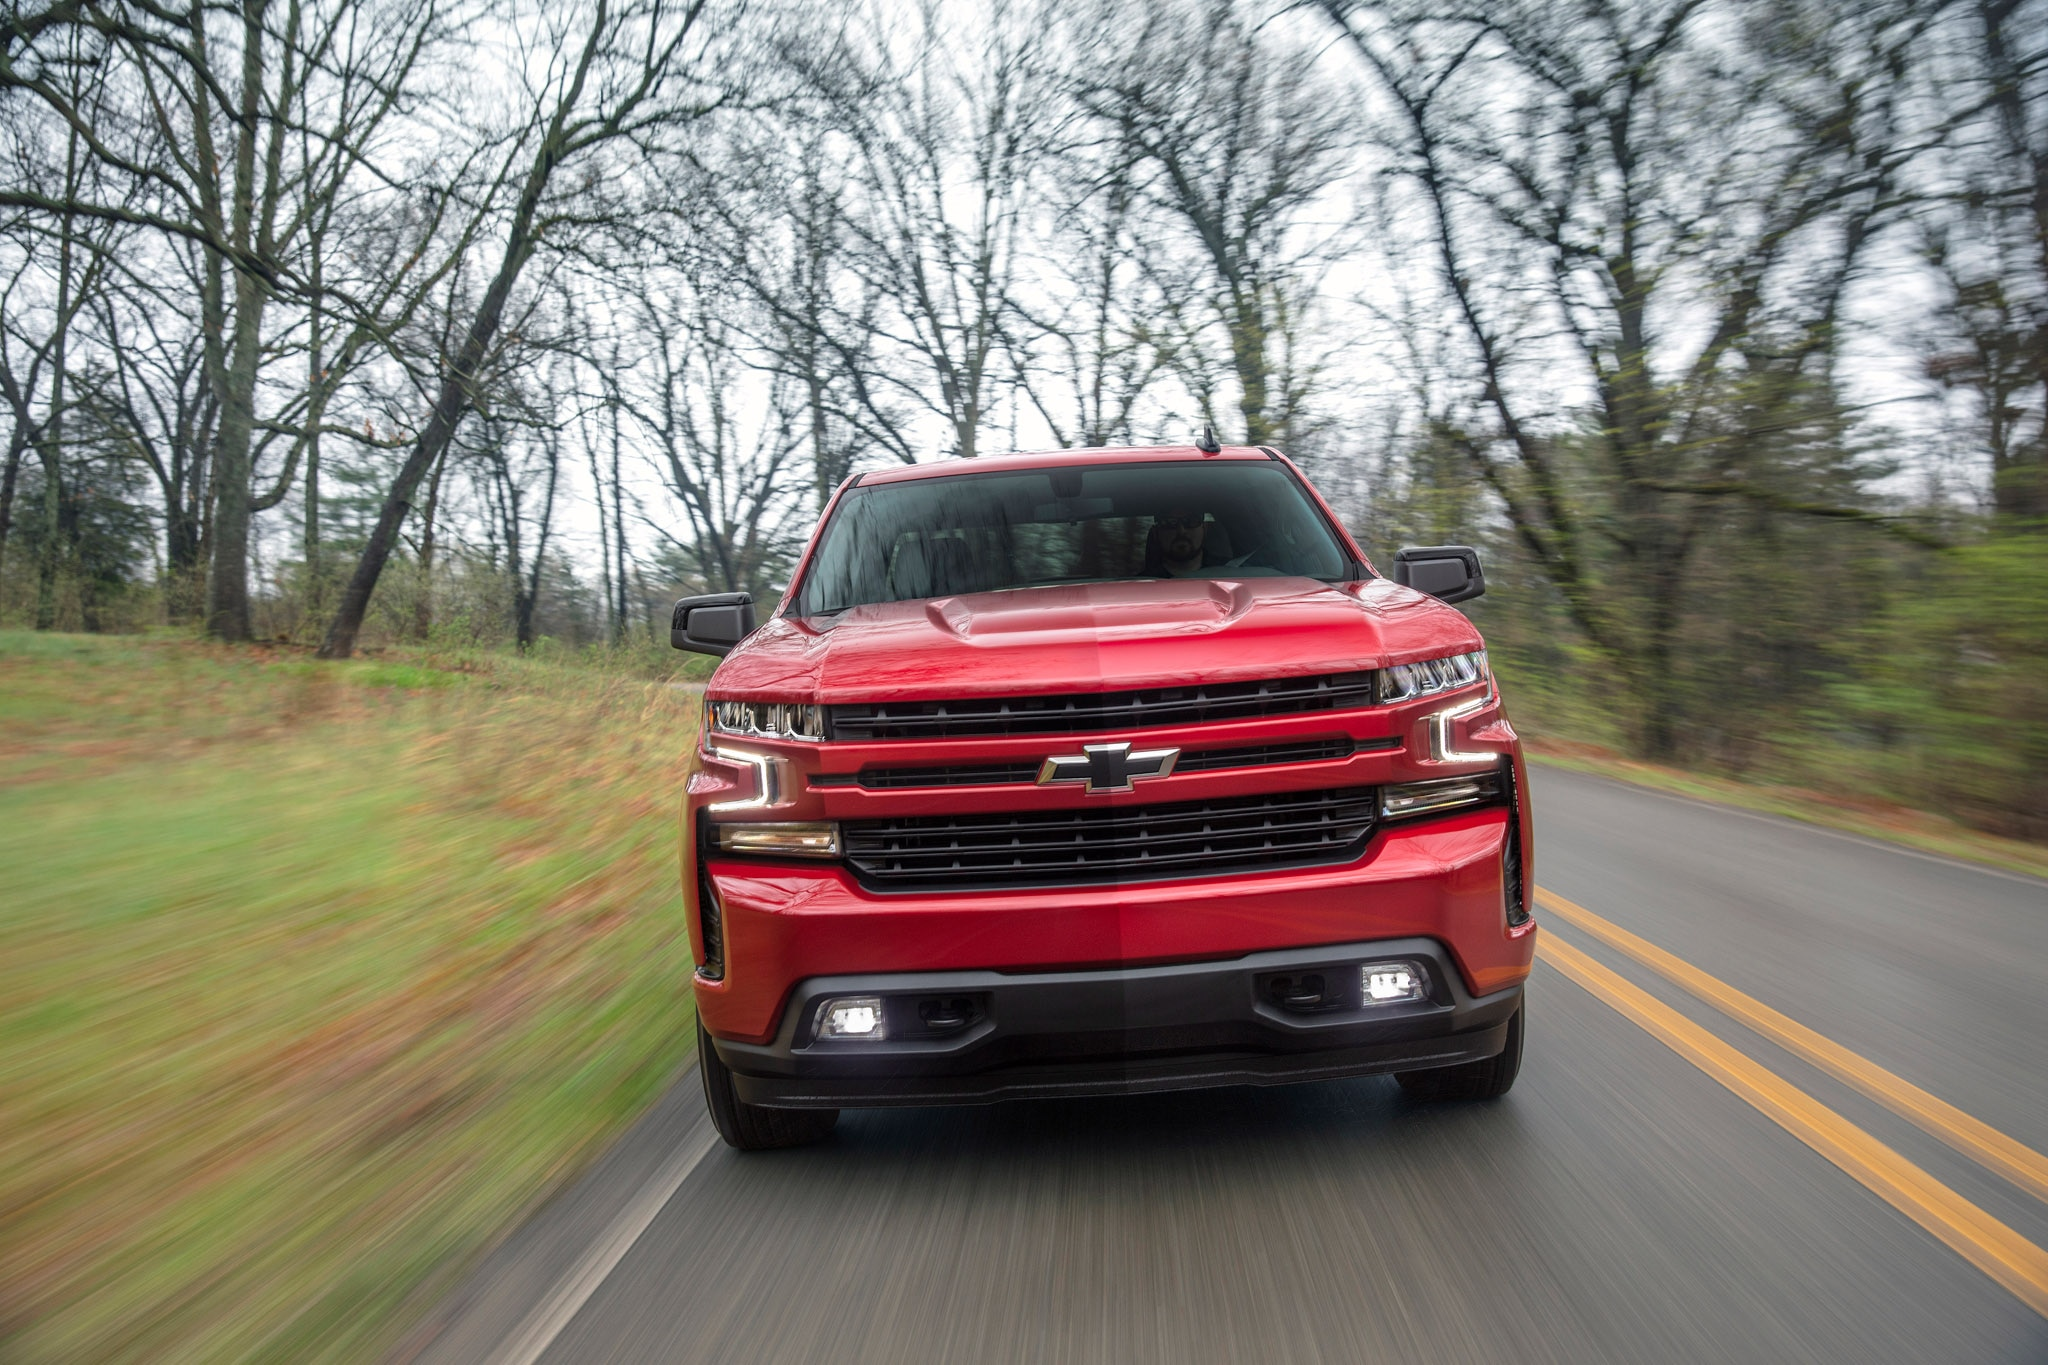 2019 Chevrolet Silverado Pricing Announced Automobile Magazine